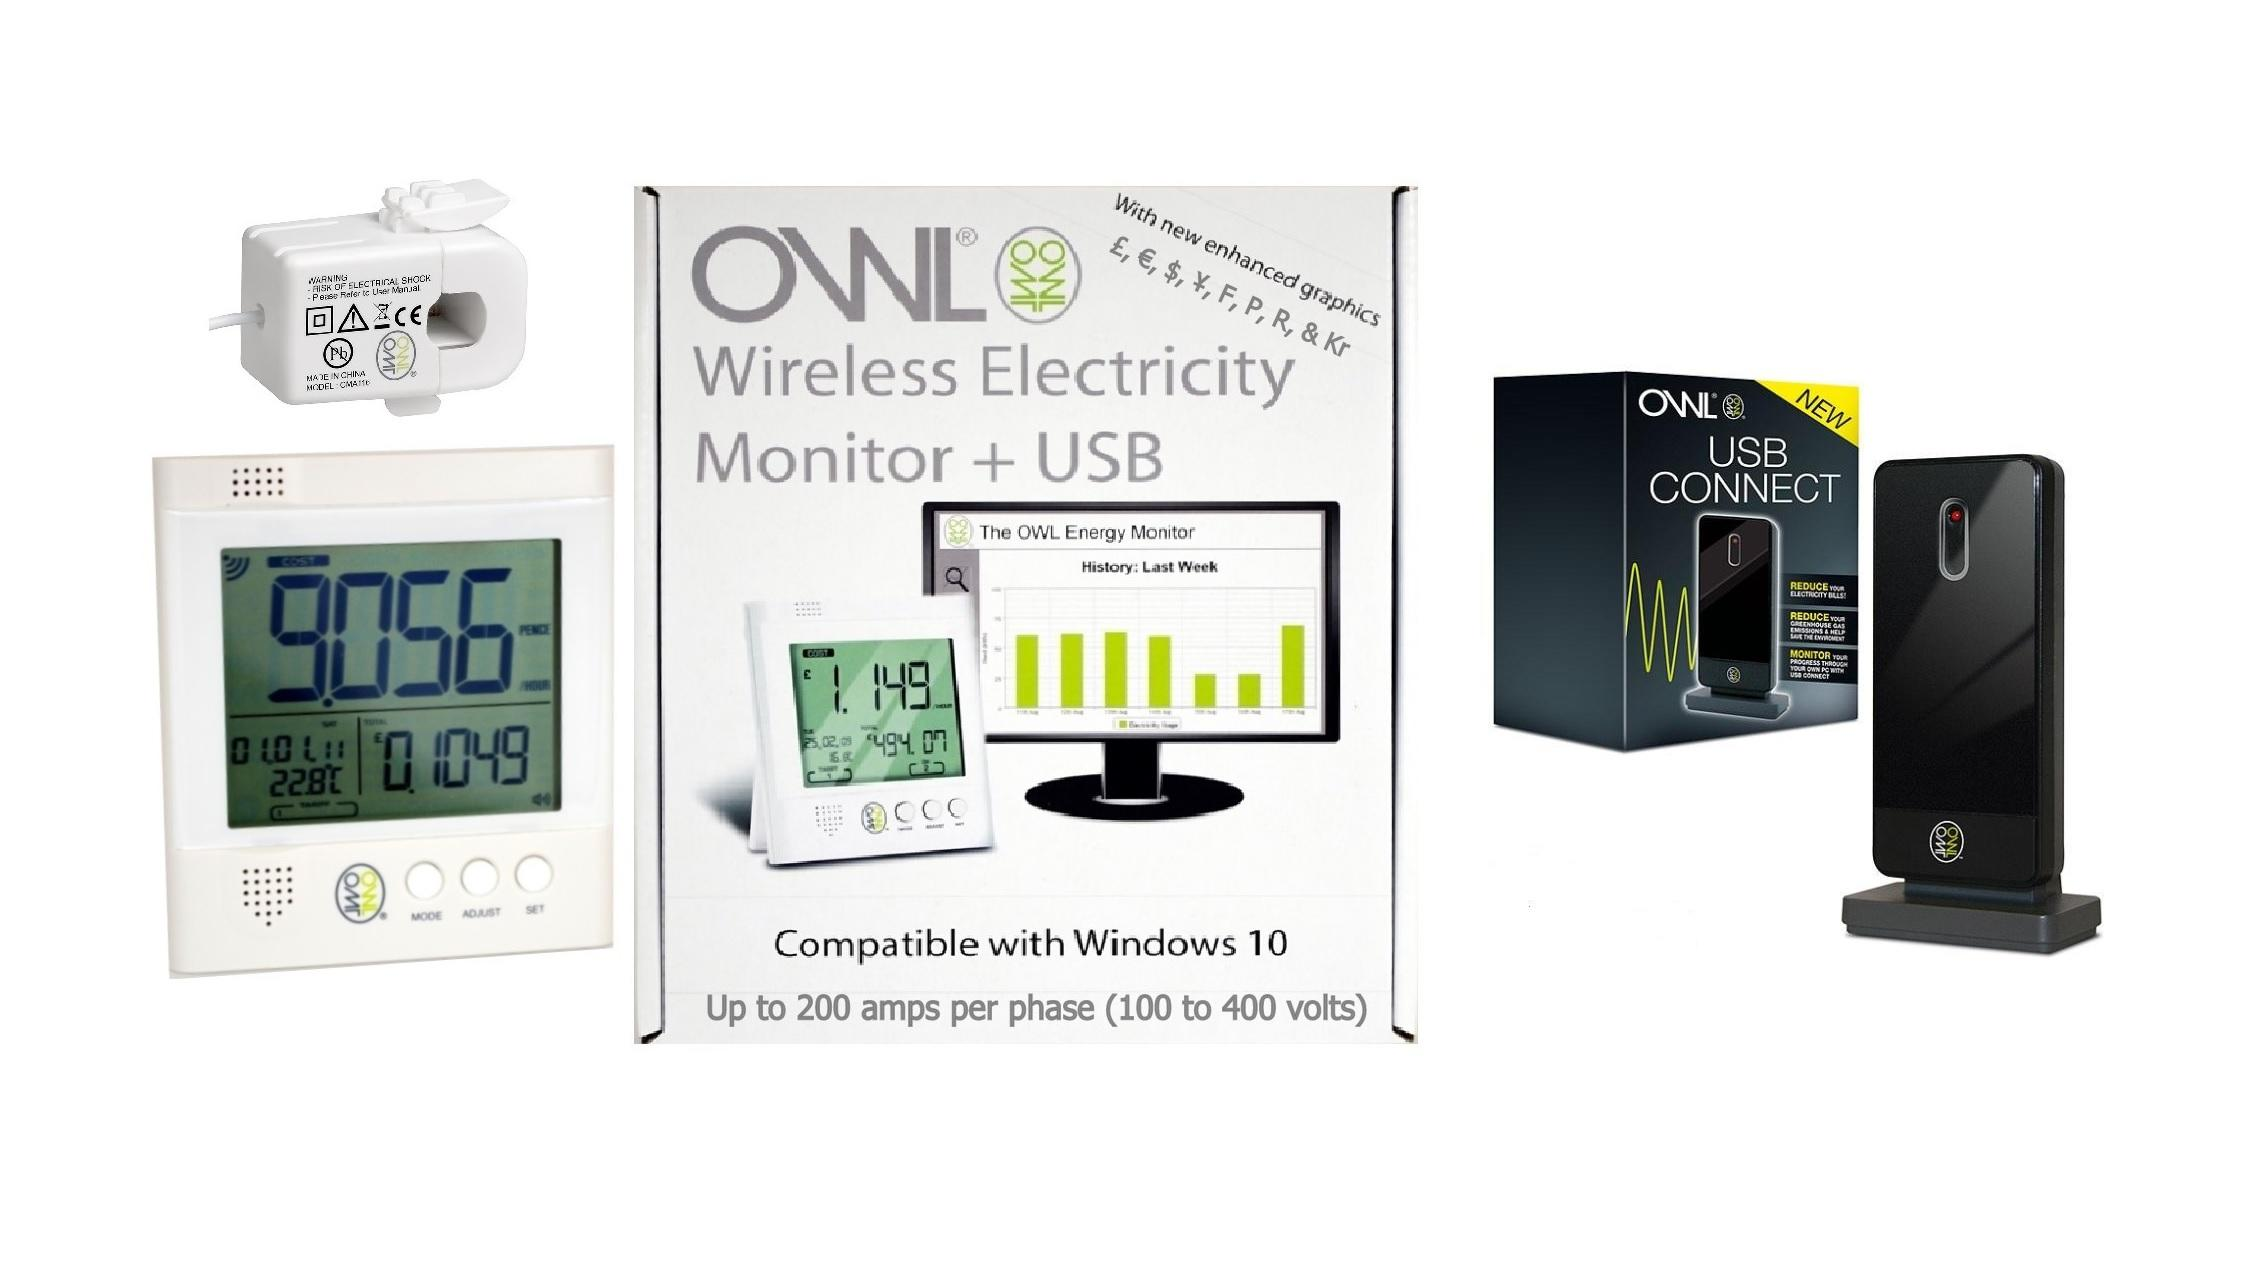 OWL +USB CM160 Wireless Energy Monitor / CM120 USB Connect Pack